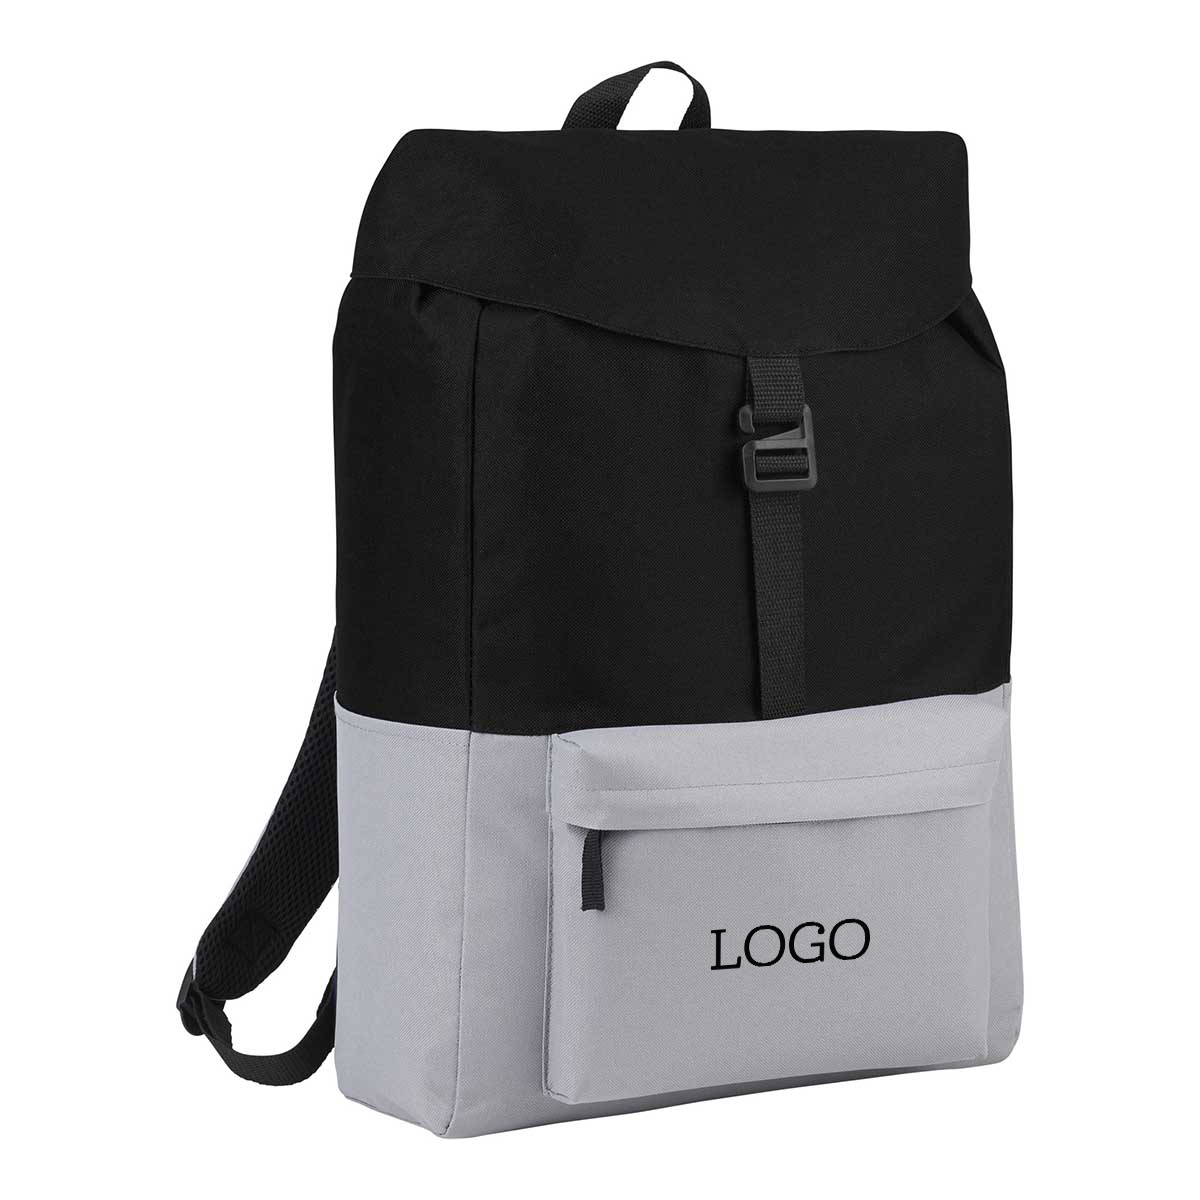 250766 ash backpack one color imprint one location